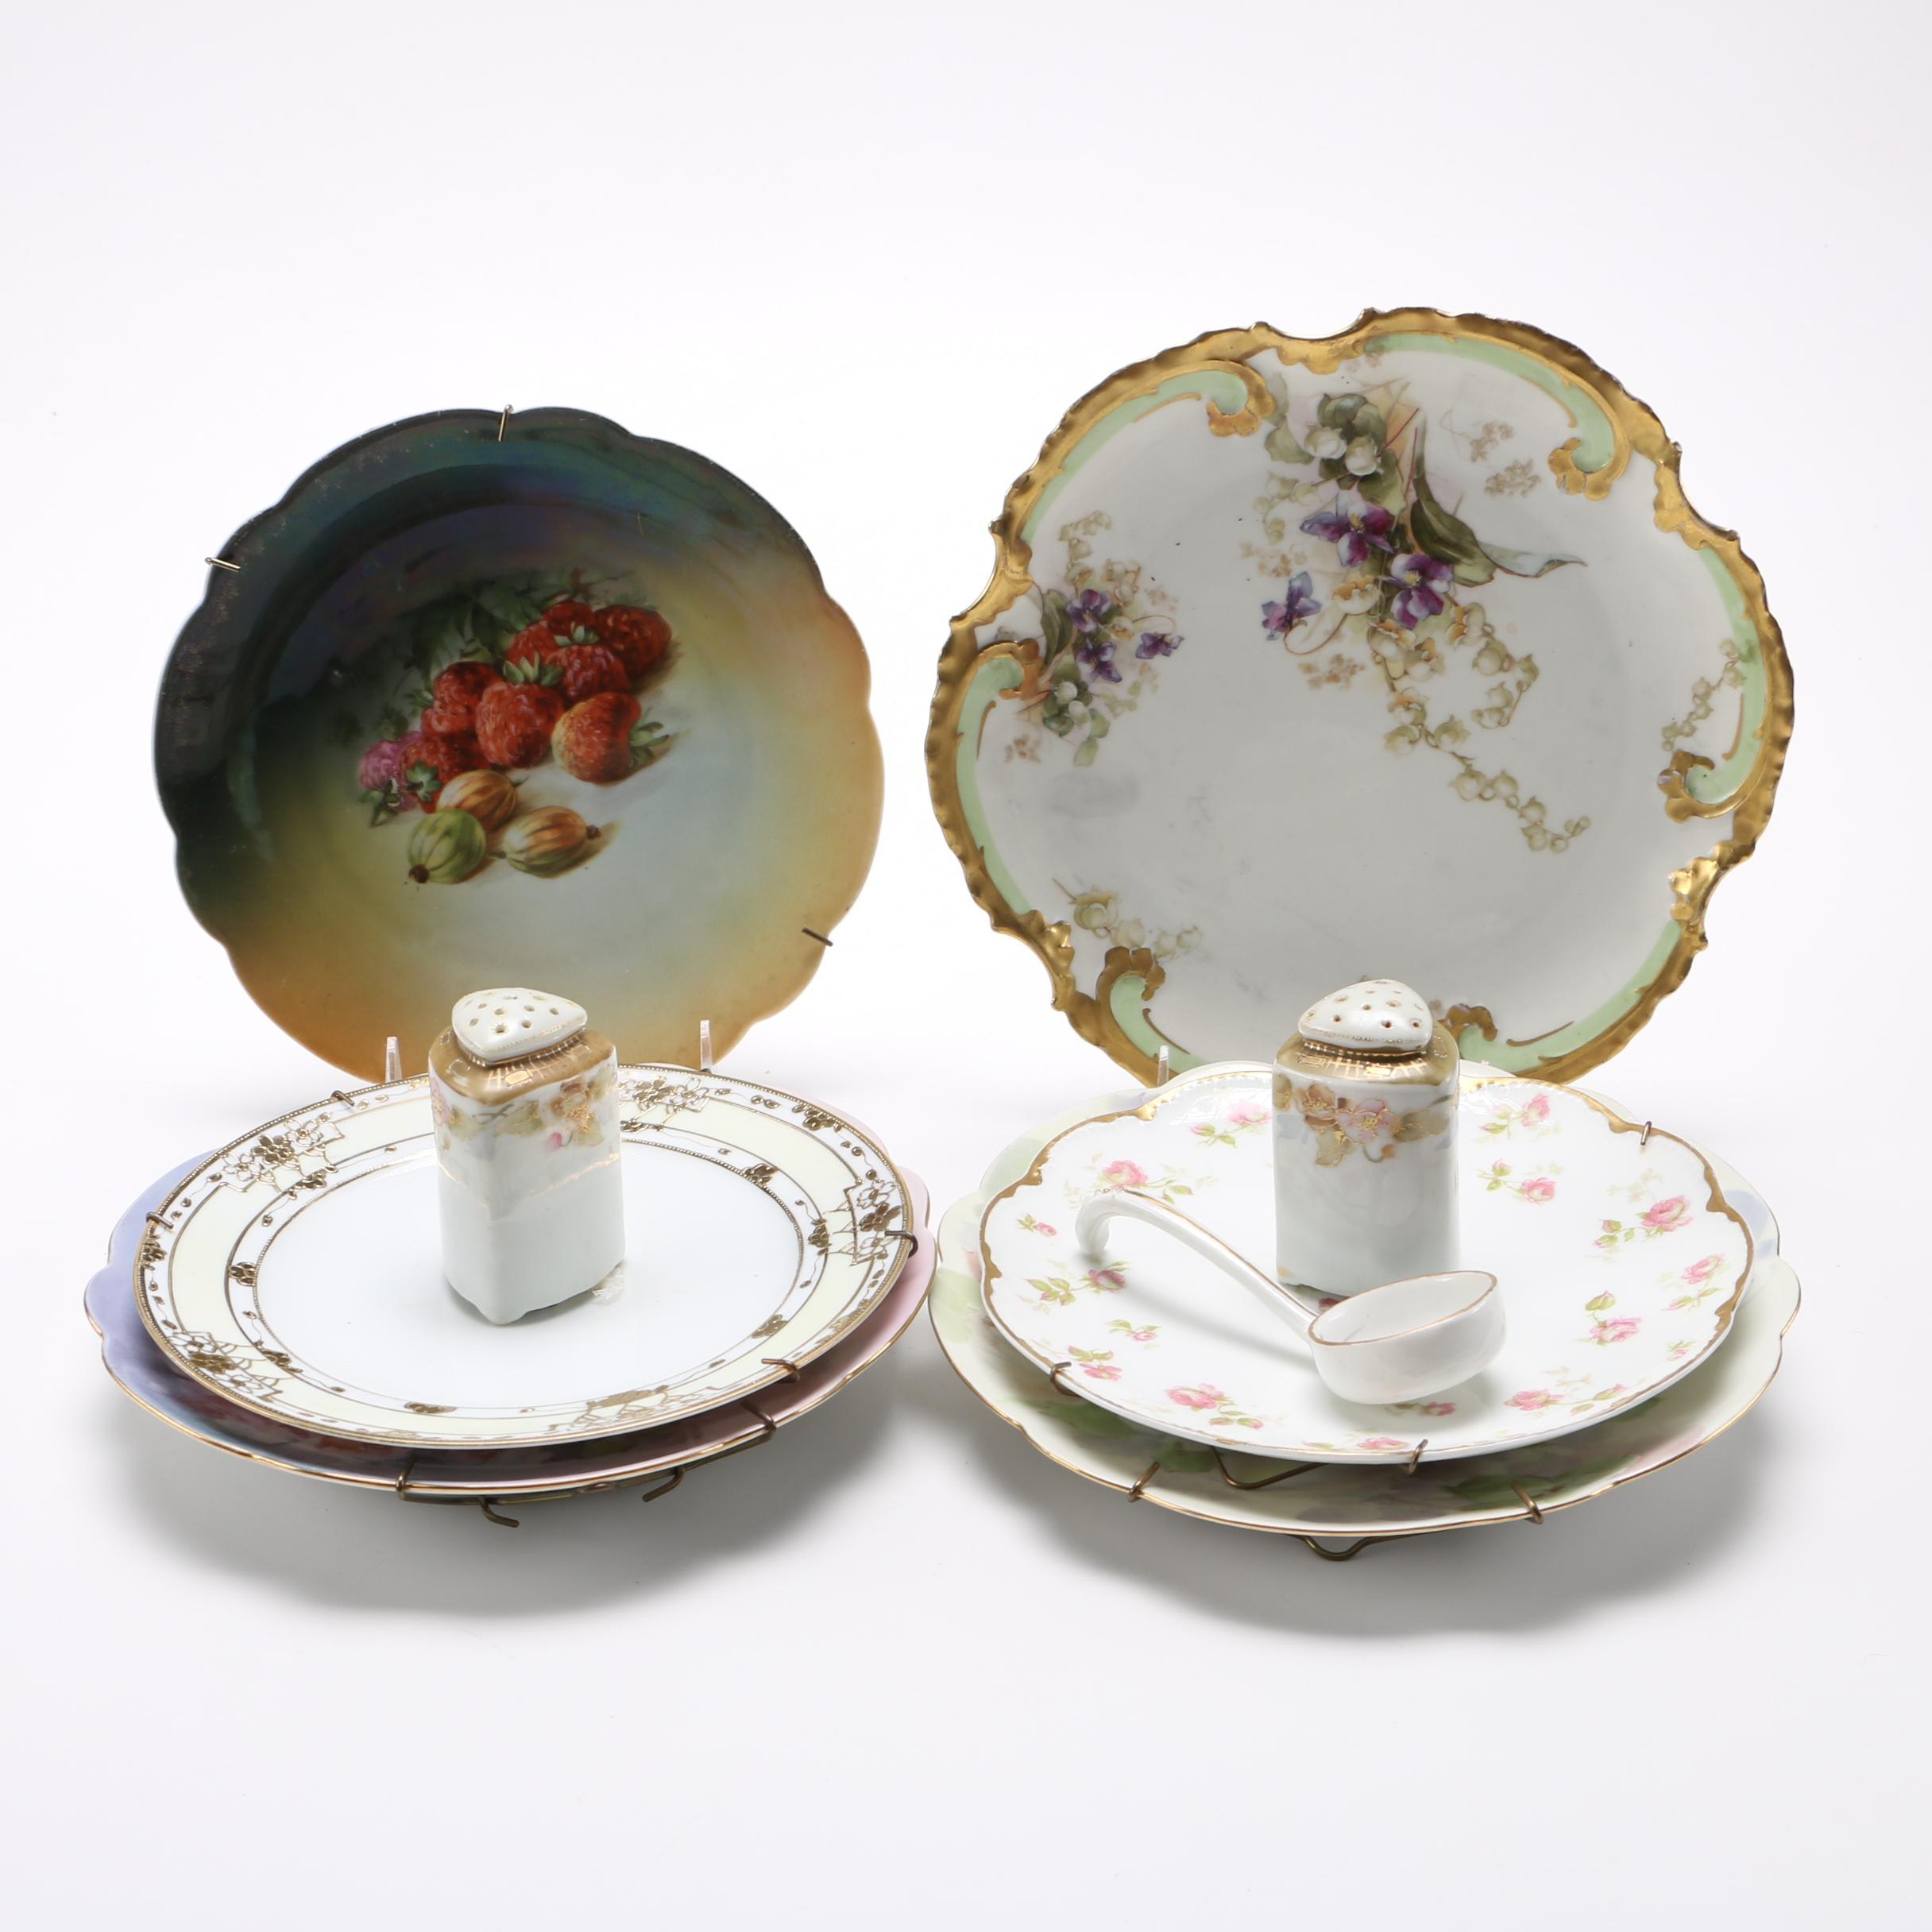 Decorative Porcelain Plates With Table Accessories With Limoges